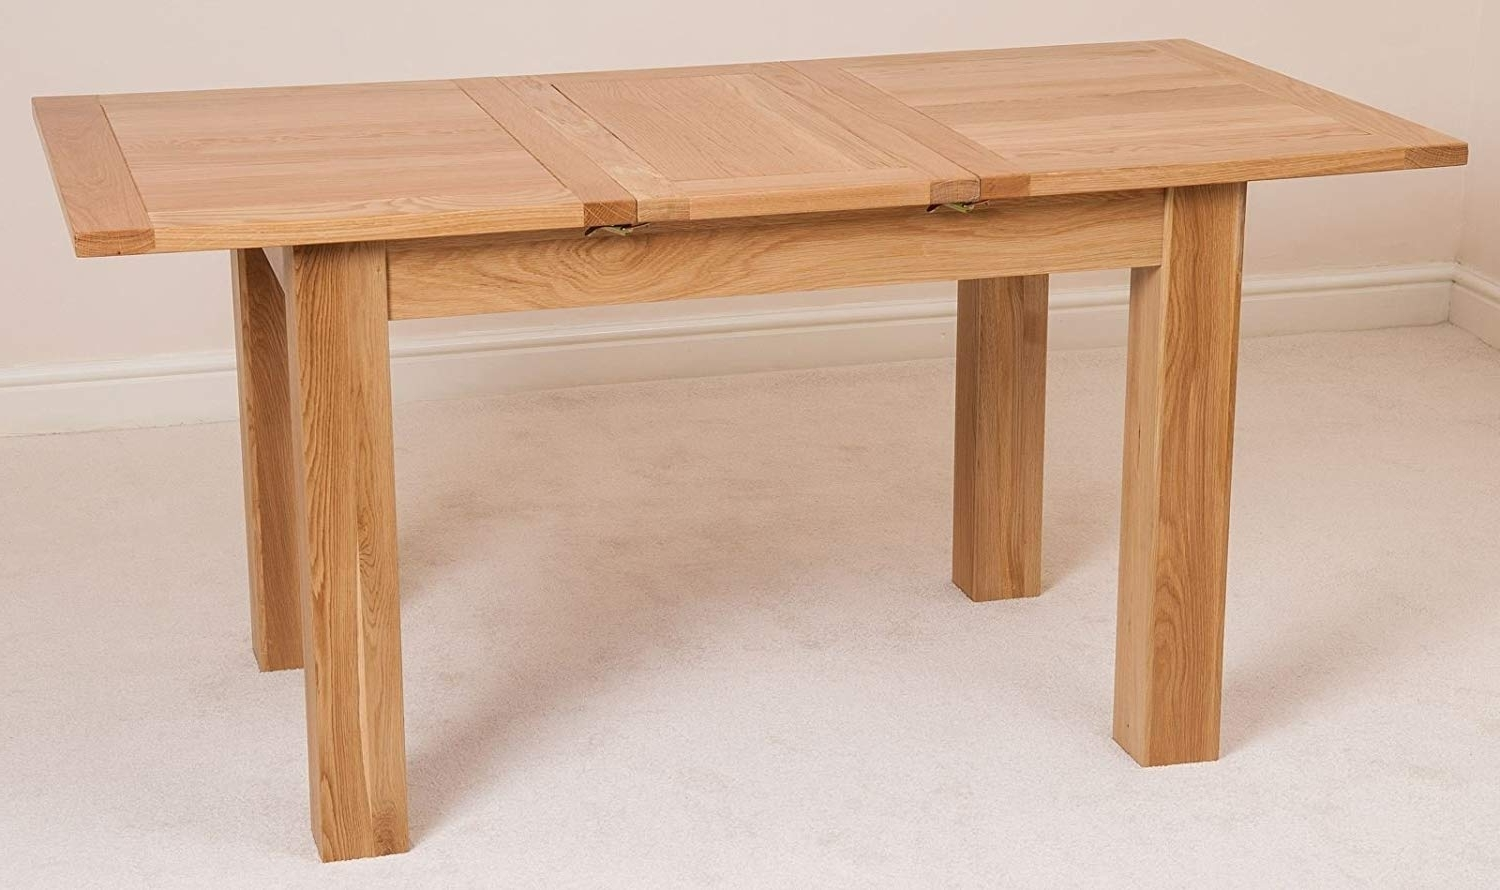 Extending Solid Oak Dining Tables With Regard To Latest Oak Extendable Dining Table (Gallery 1 of 25)